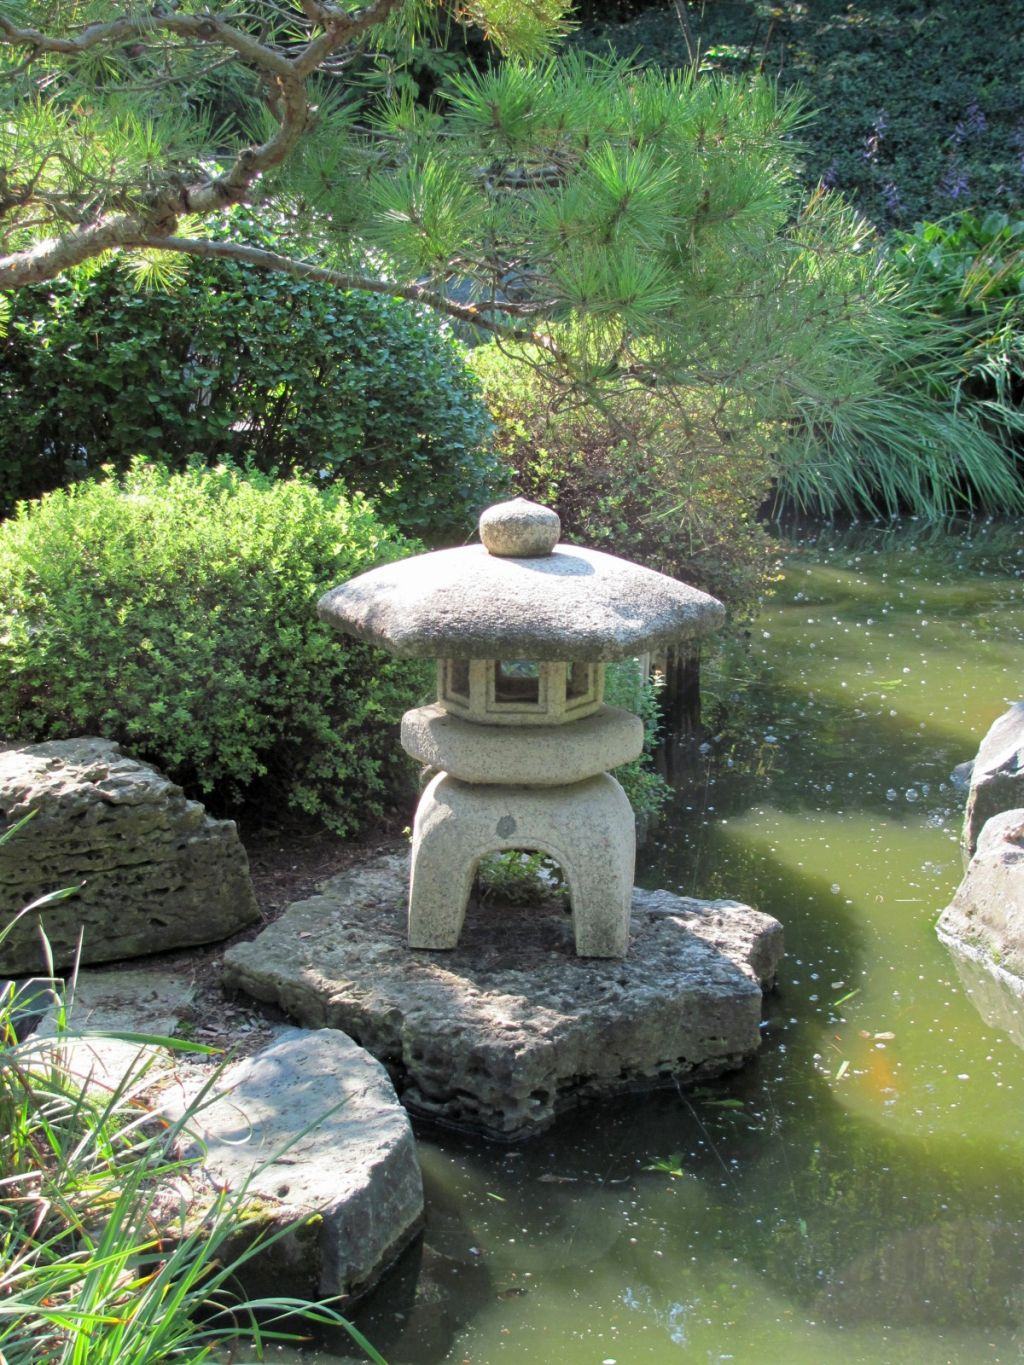 20 Lovely Japanese Garden Designs for Small Spaces on Small Backyard Japanese Garden Ideas id=21921